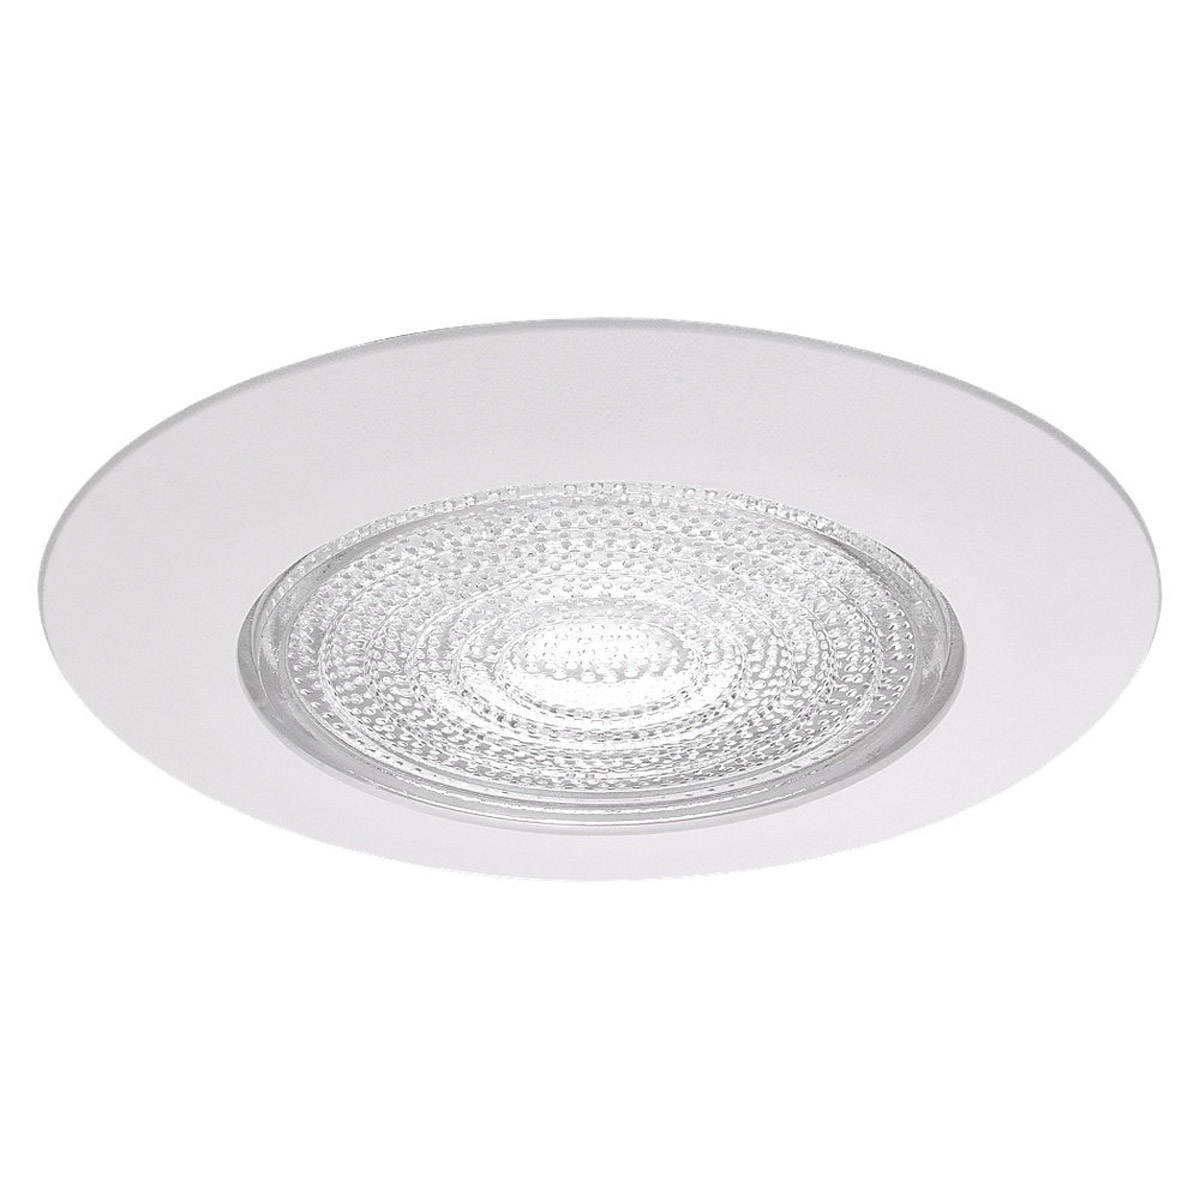 Sea Gull Lighting Signature Recessed Trim Only in White 1155AT-15